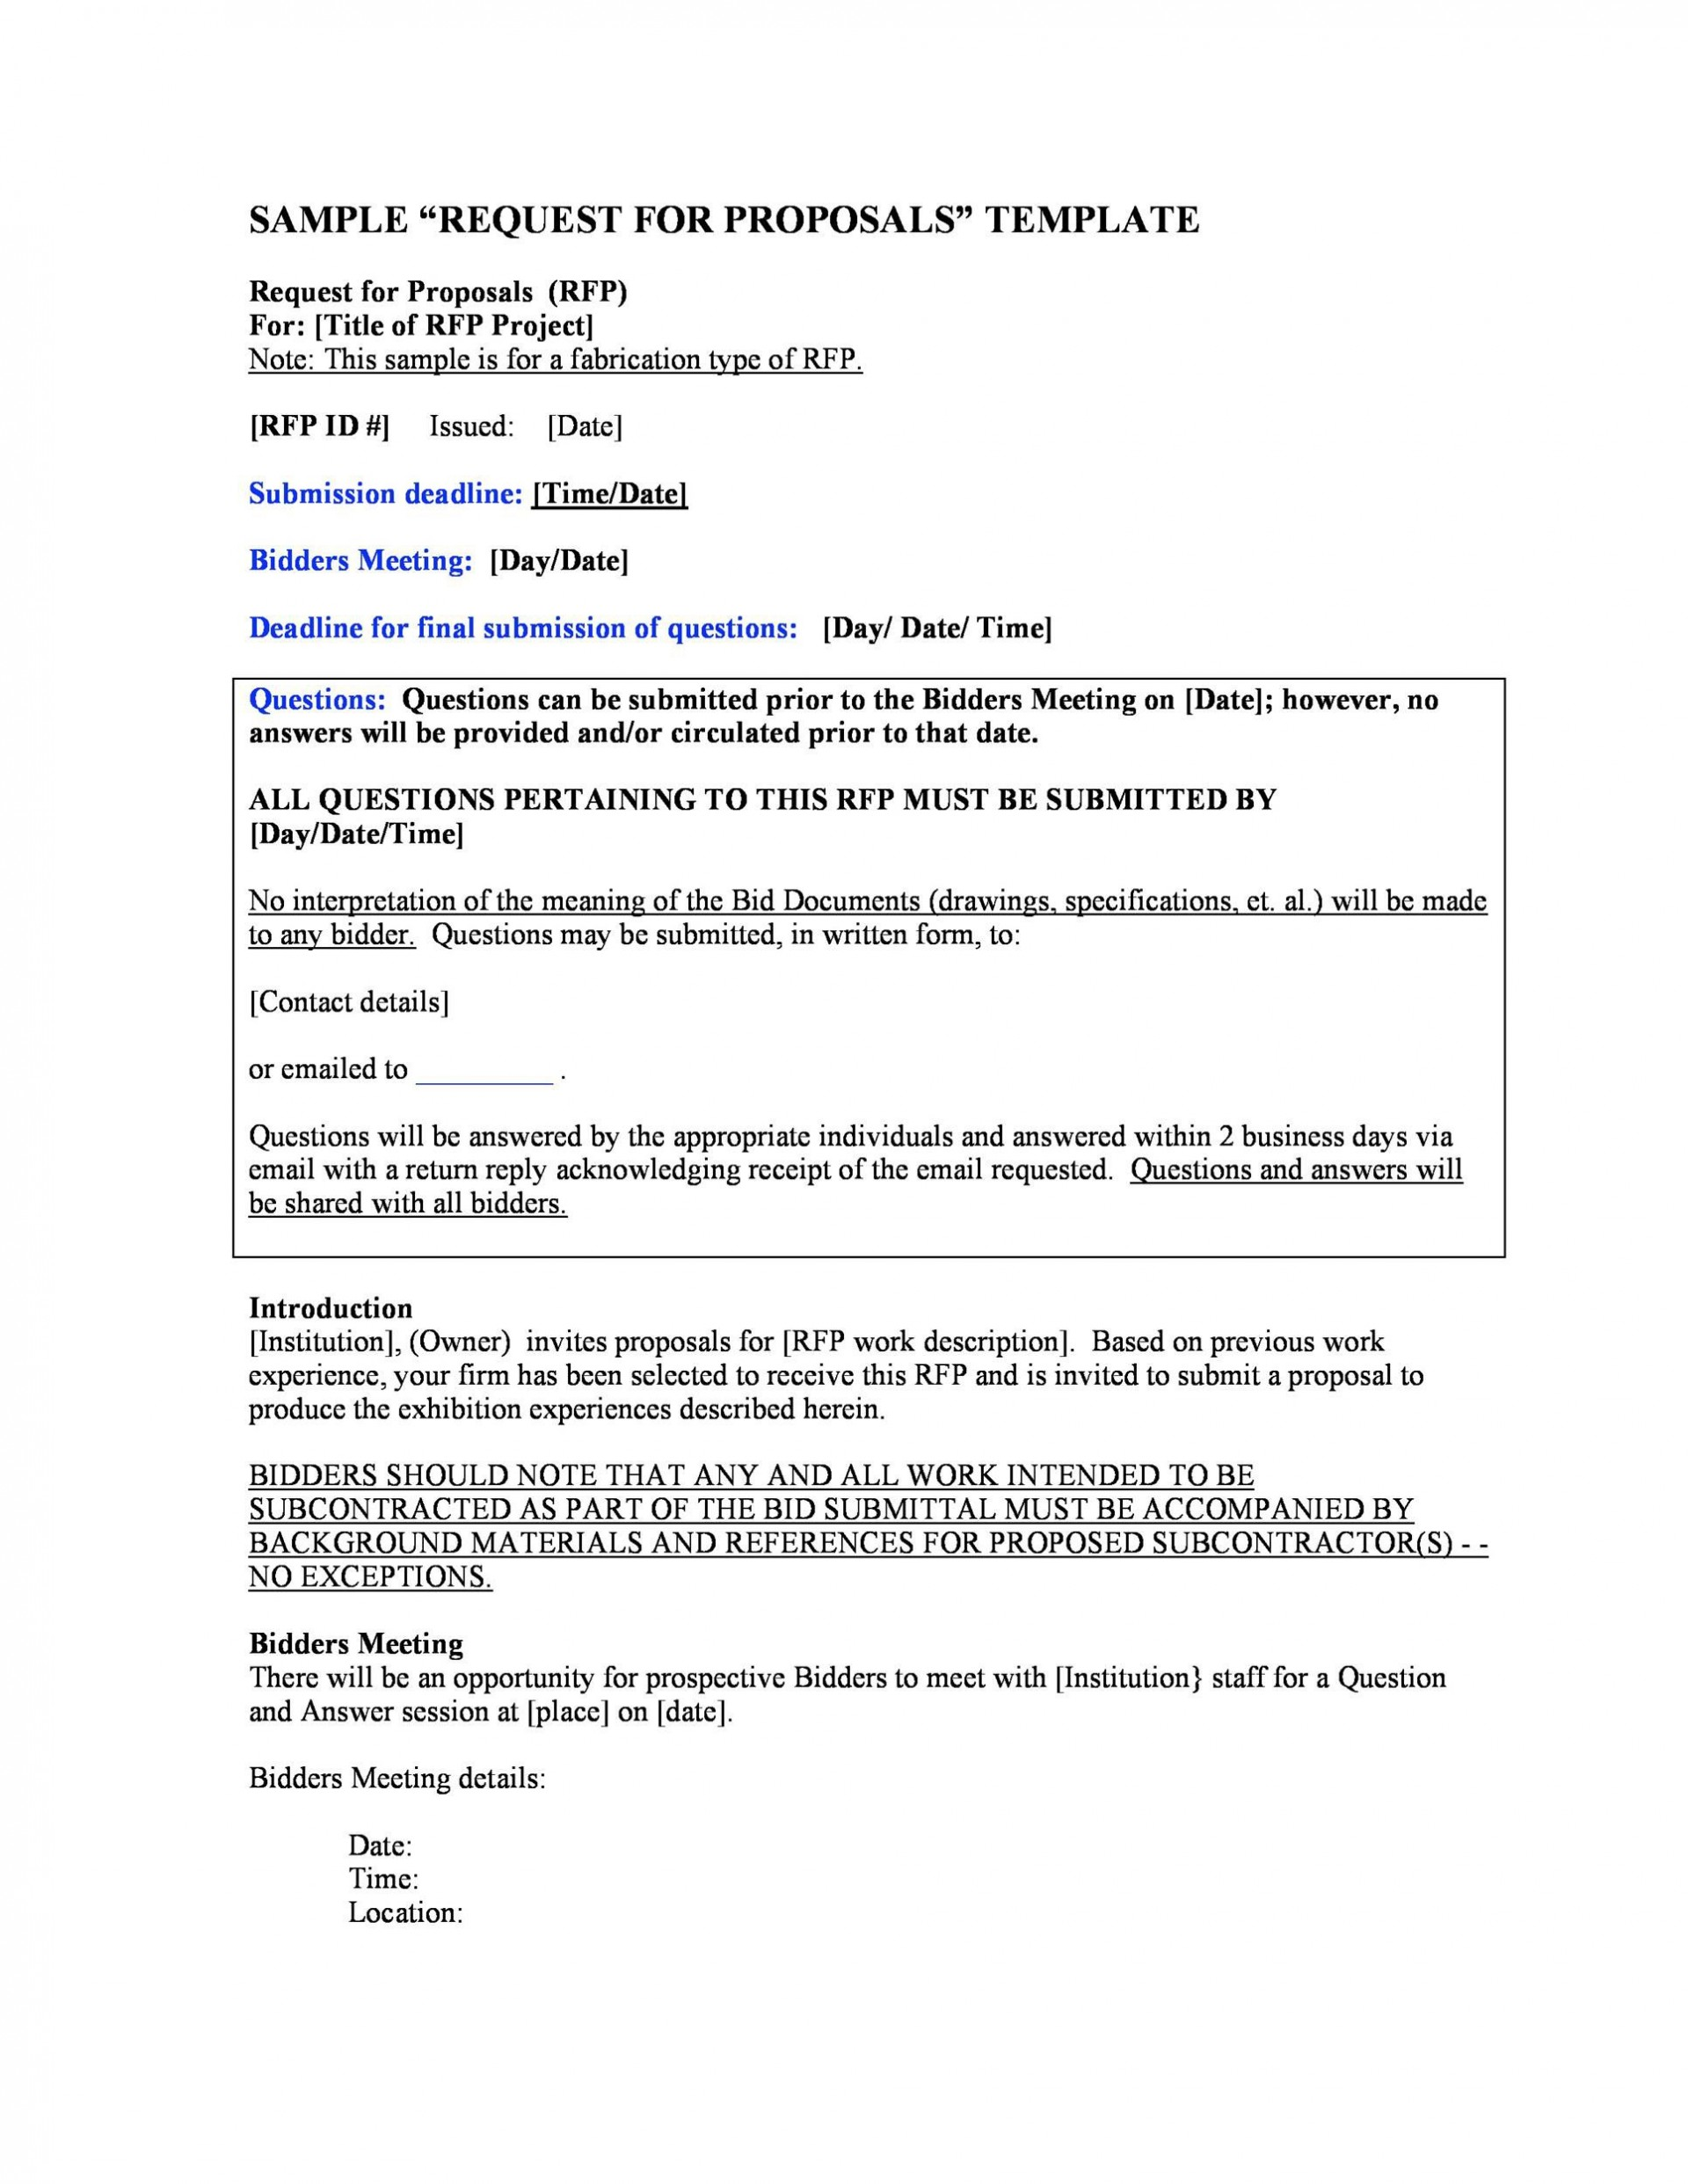 007 Magnificent Request For Proposal Response Template Free Sample 1920